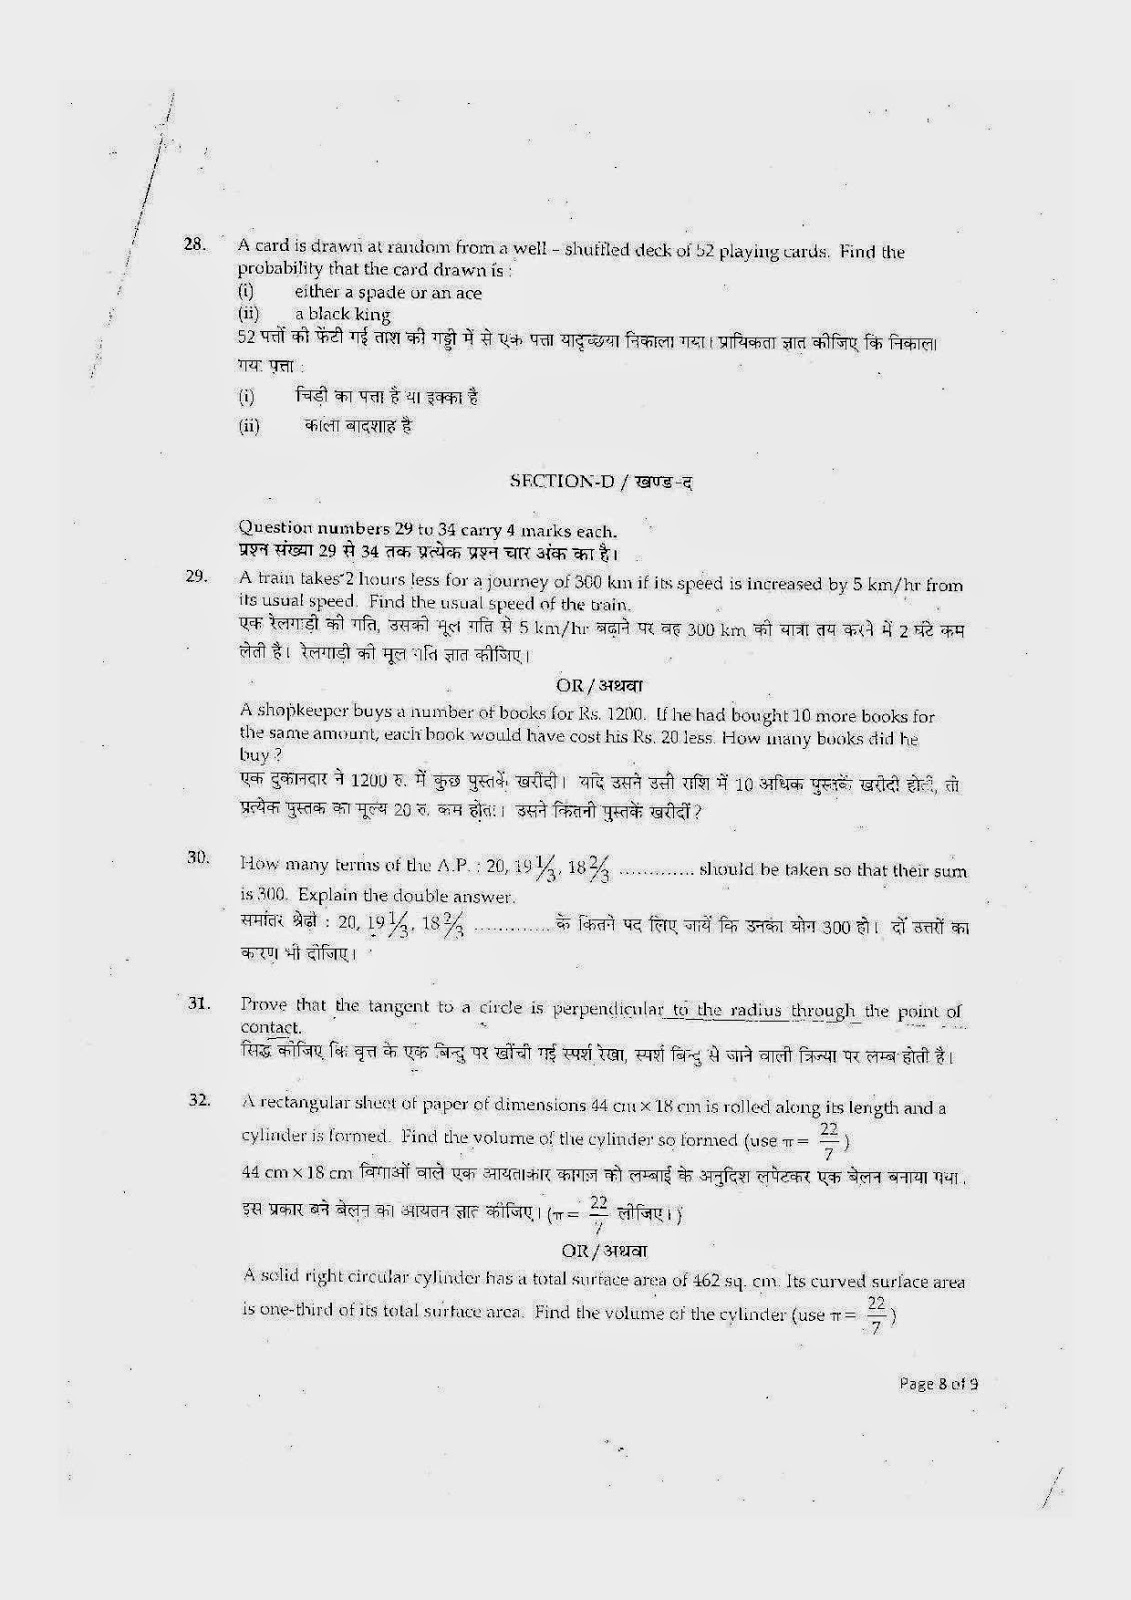 cbse class 10th mathematics question paper 2012 set-1